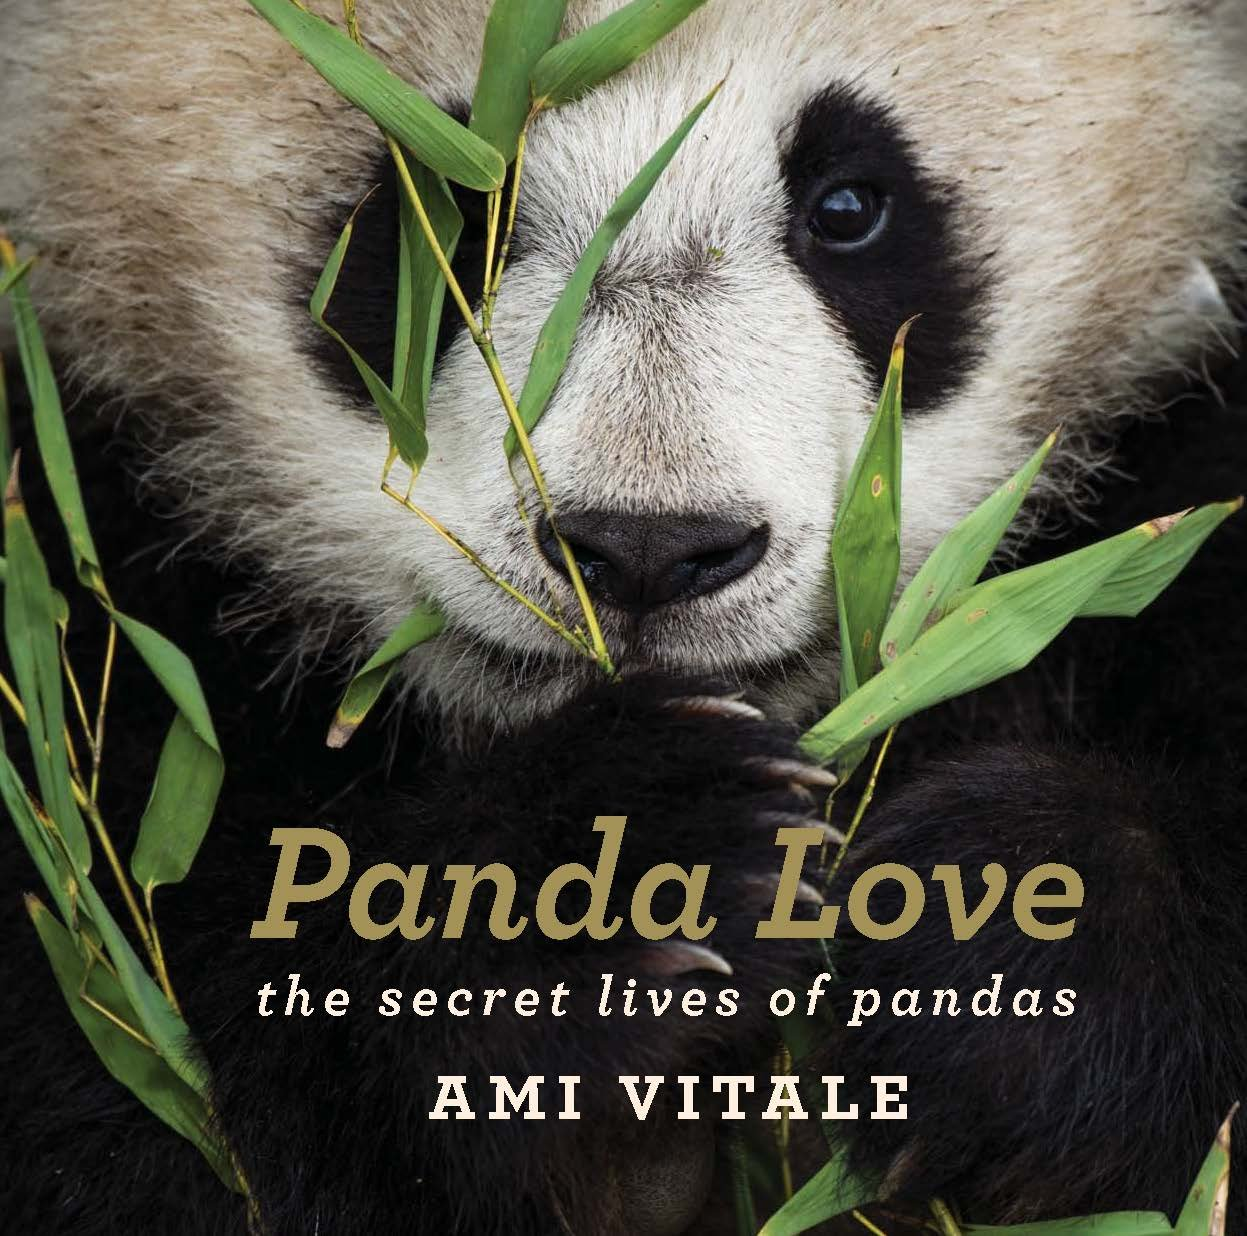 Panda Love: The Secret Lives of Pandas – A New Book from Ami Vitale